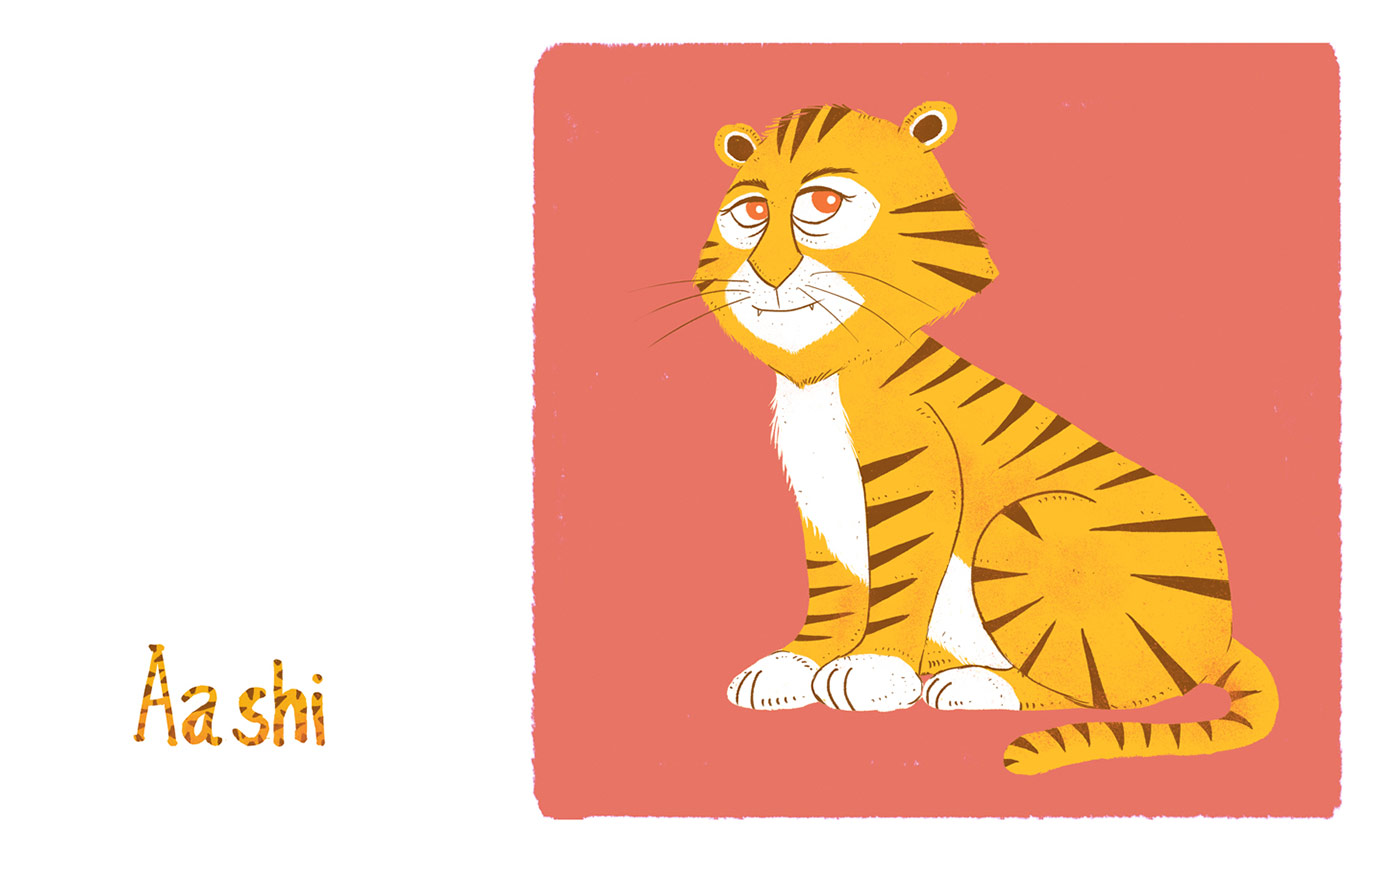 Tiger cub concept for a children story